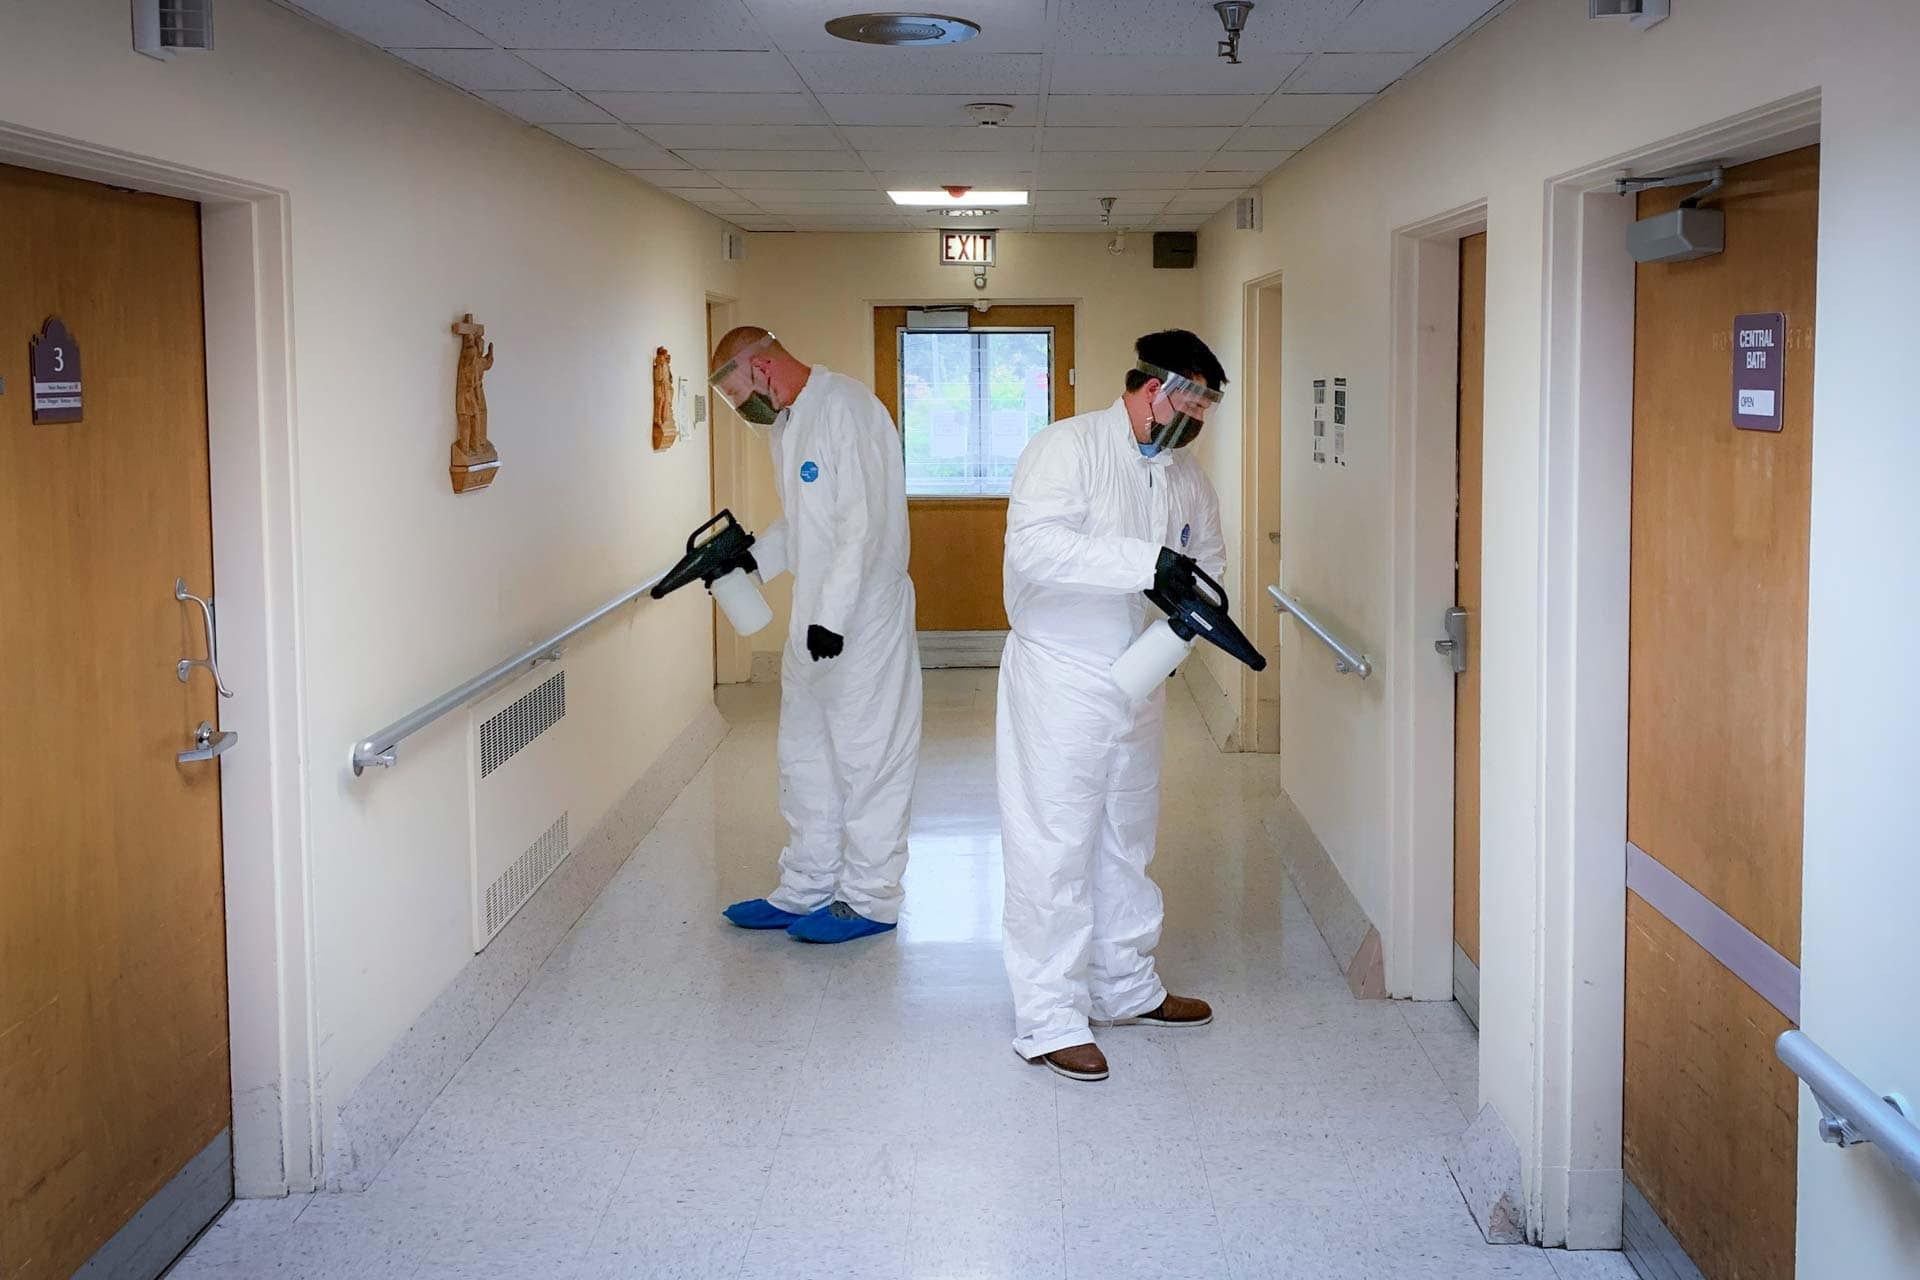 The Bacteria Busters team uses medical-grade disinfection solutions to help keep homes and offices germ-free.